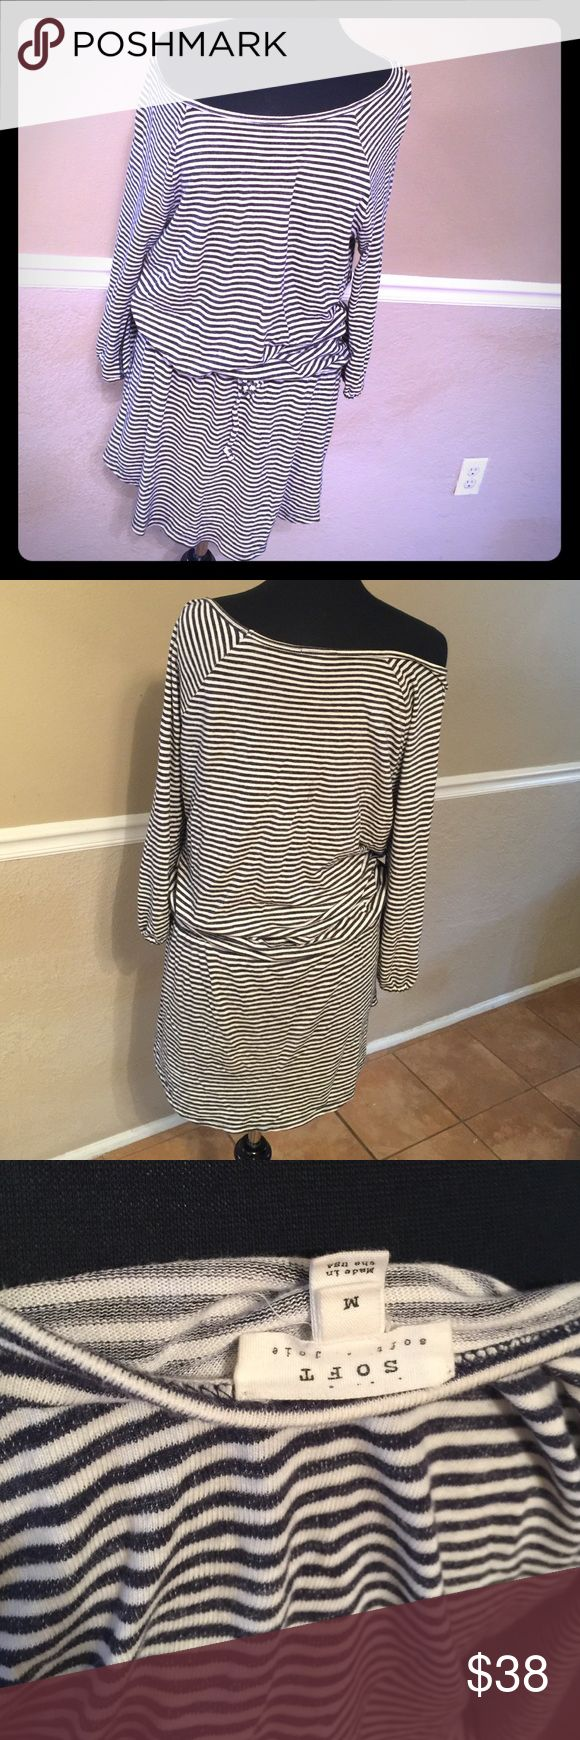 Soft Joie Dress Loungy and casual dress by Joie. Has a drawstring waist and off the shoulder look. Much cuter on than the mannequin. Can be found at Nordstroms Joie Dresses Mini